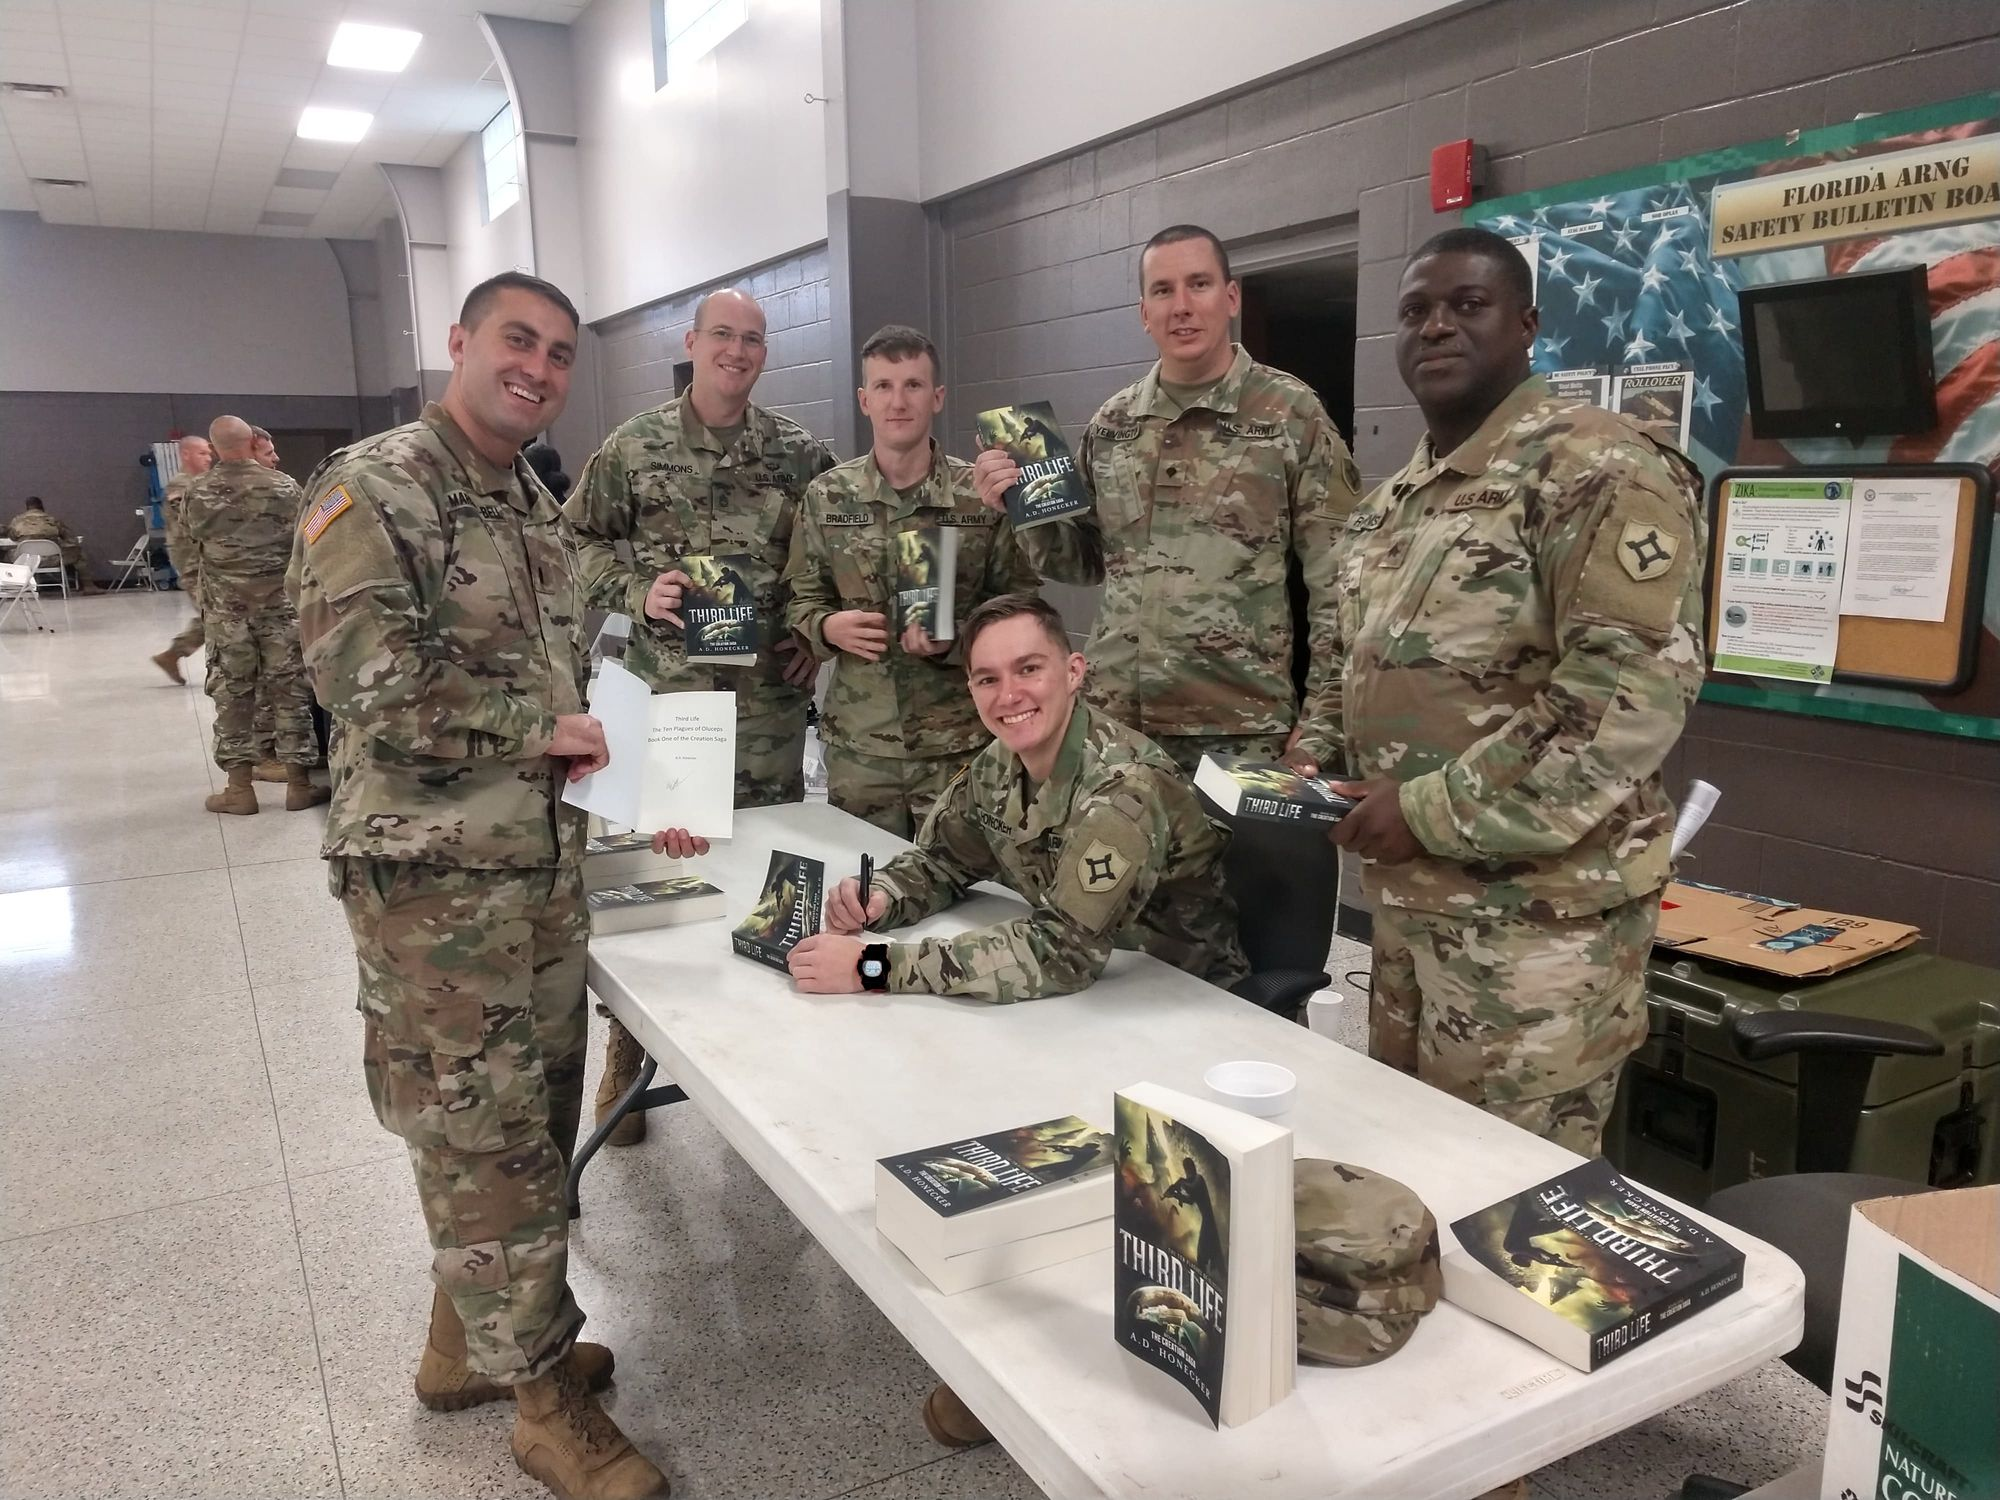 Spc Andrew Honecker Started Bringing In Chapters Of The Book He Was Writing To Share With His Battle Buddies And Get Their Opin My Hero Published Author Battle